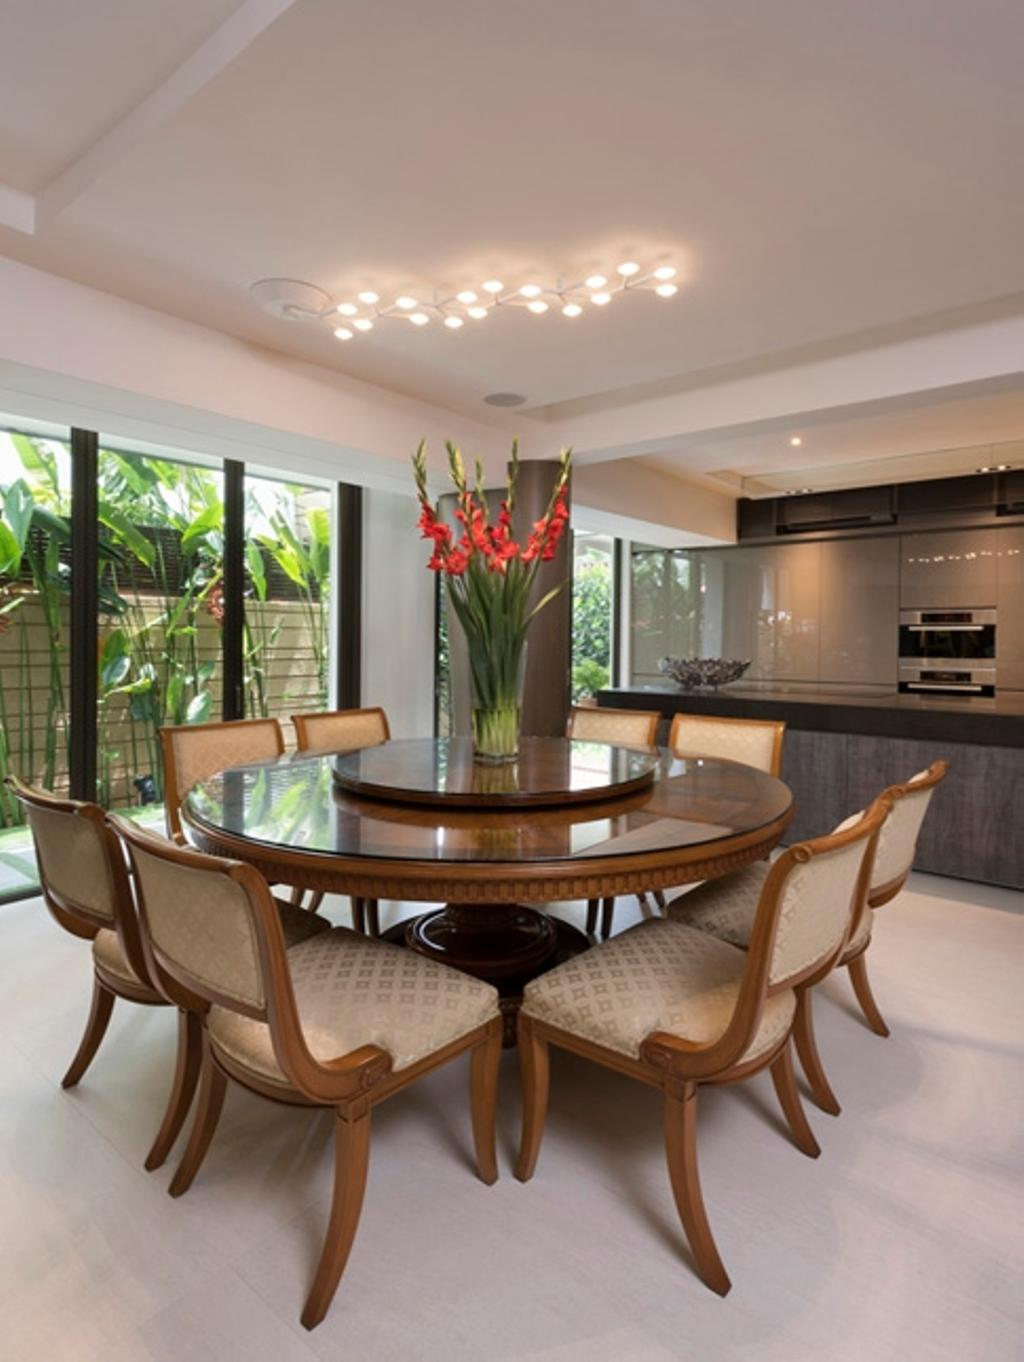 Contemporary, Landed, Dining Room, Thomson View, Architect, Timur Designs, Flora, Jar, Plant, Potted Plant, Pottery, Vase, Chair, Furniture, Indoors, Interior Design, Room, Dining Table, Table